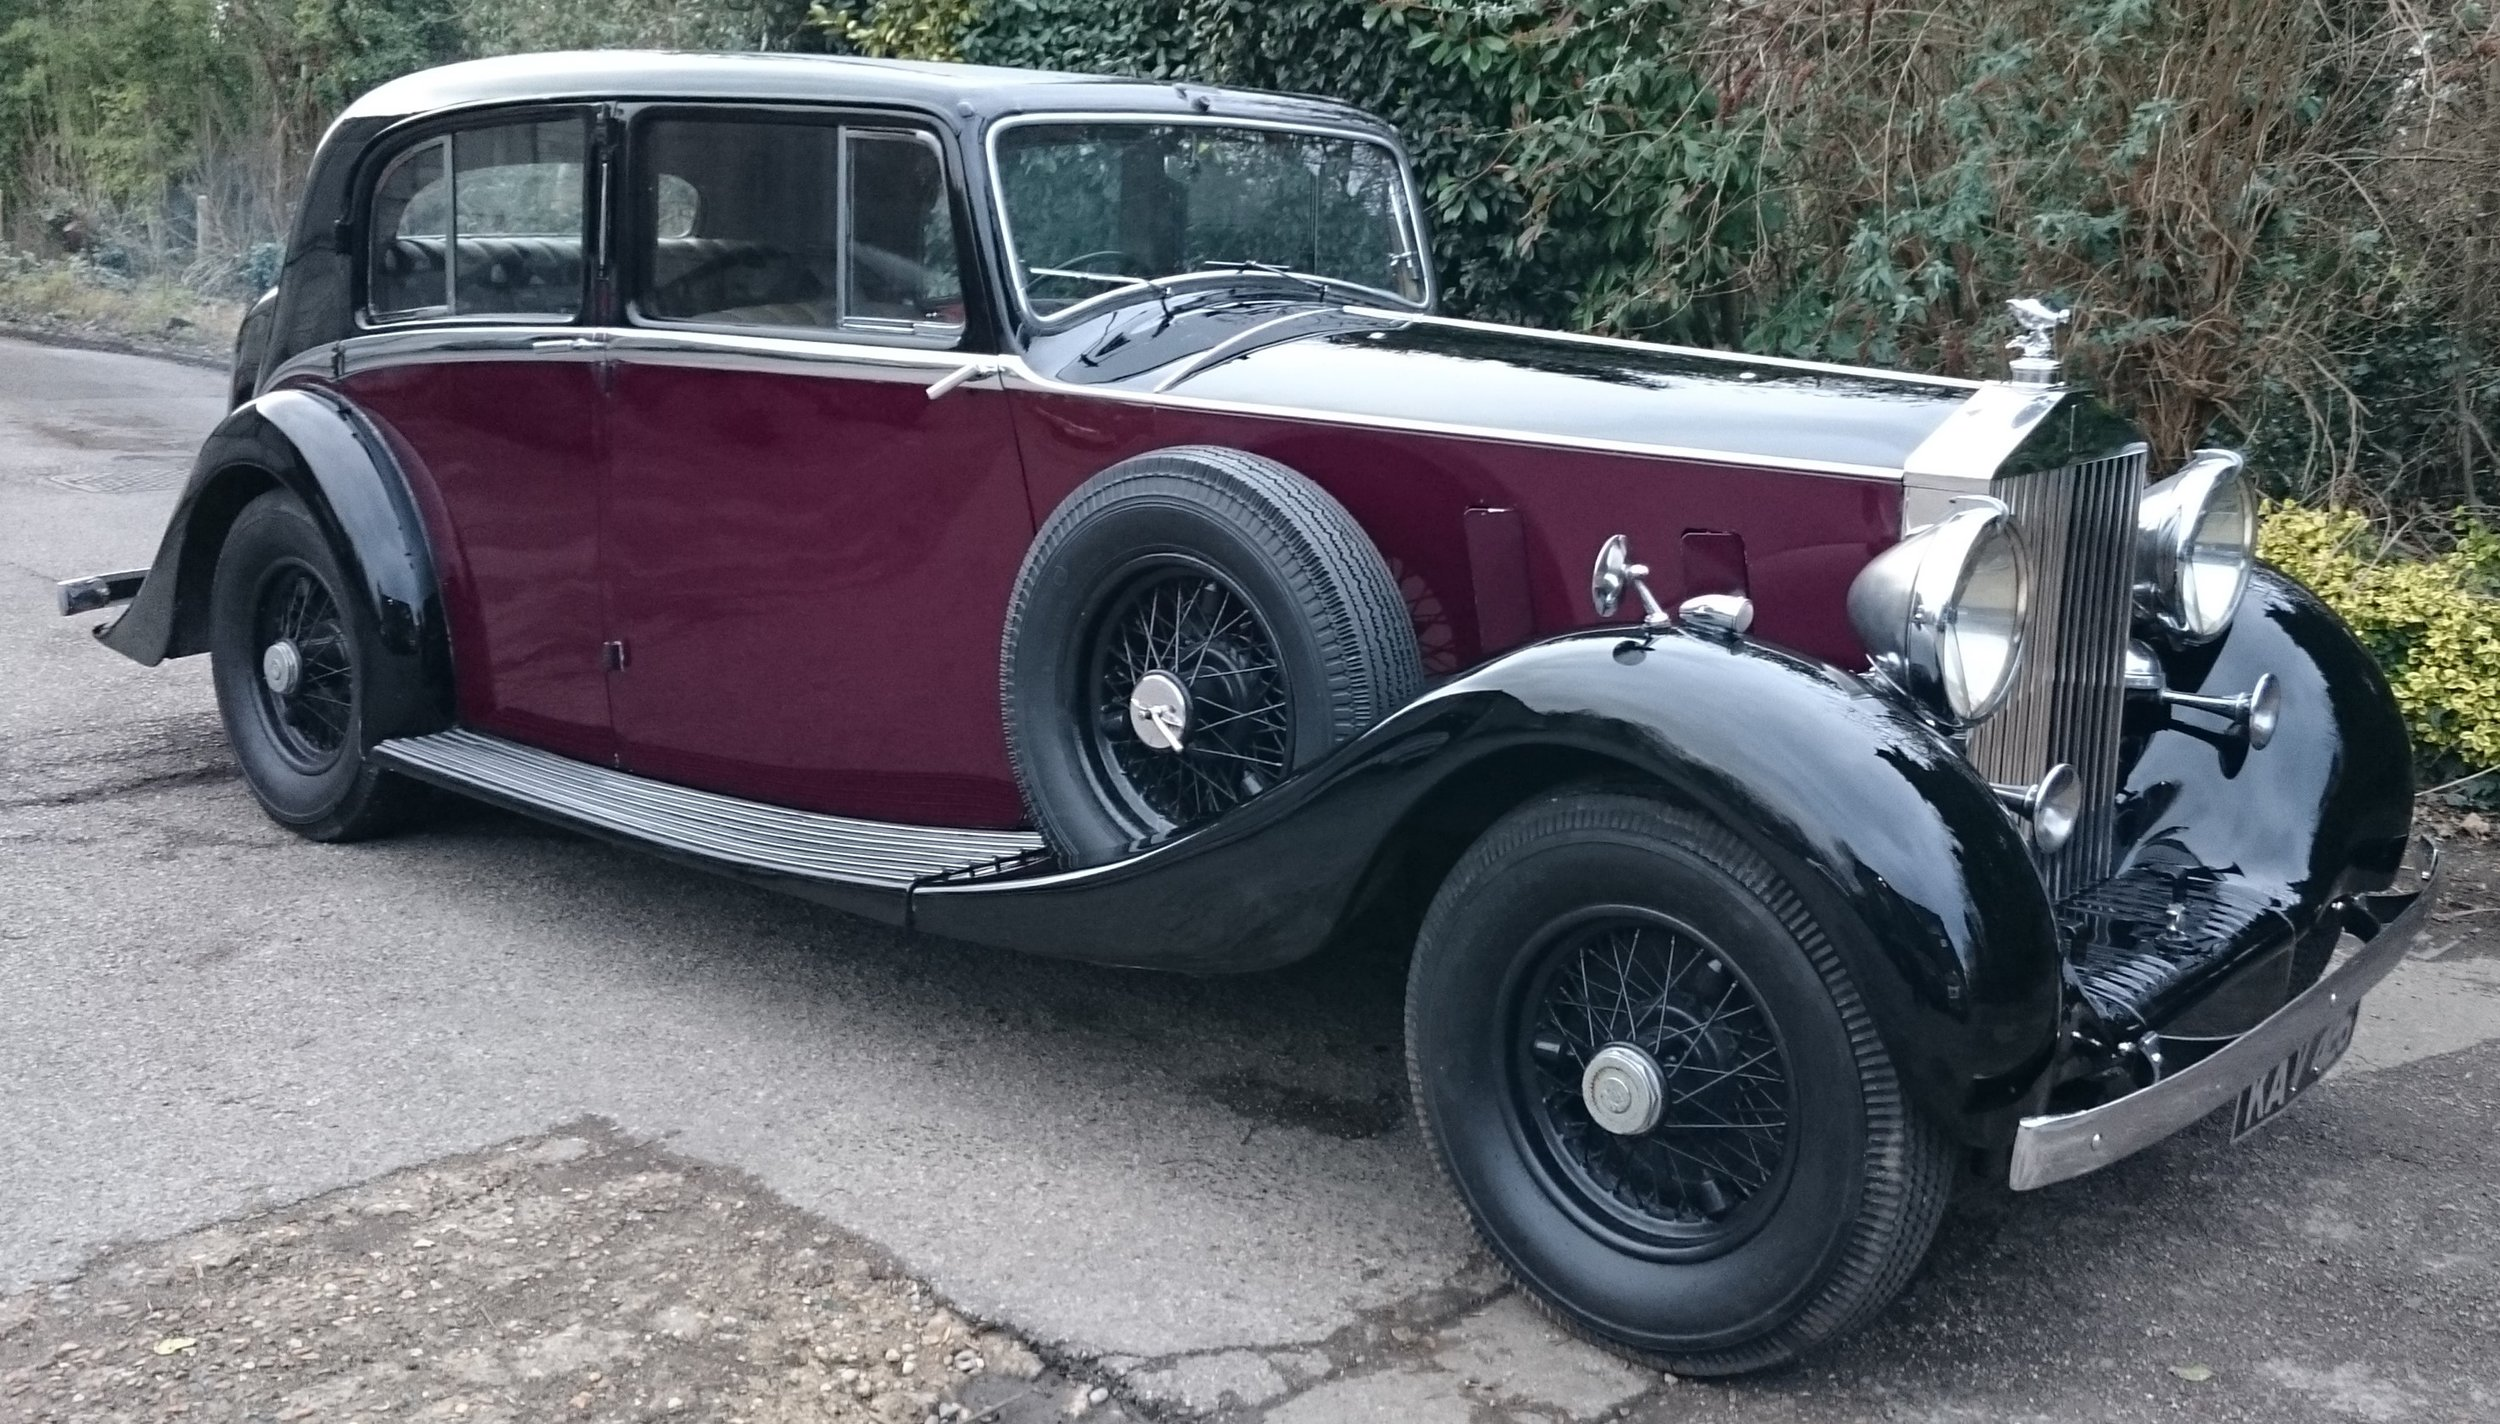 Classic Car Hire Rolls Royce Phantom III 1937 Wedding transport (2).JPG